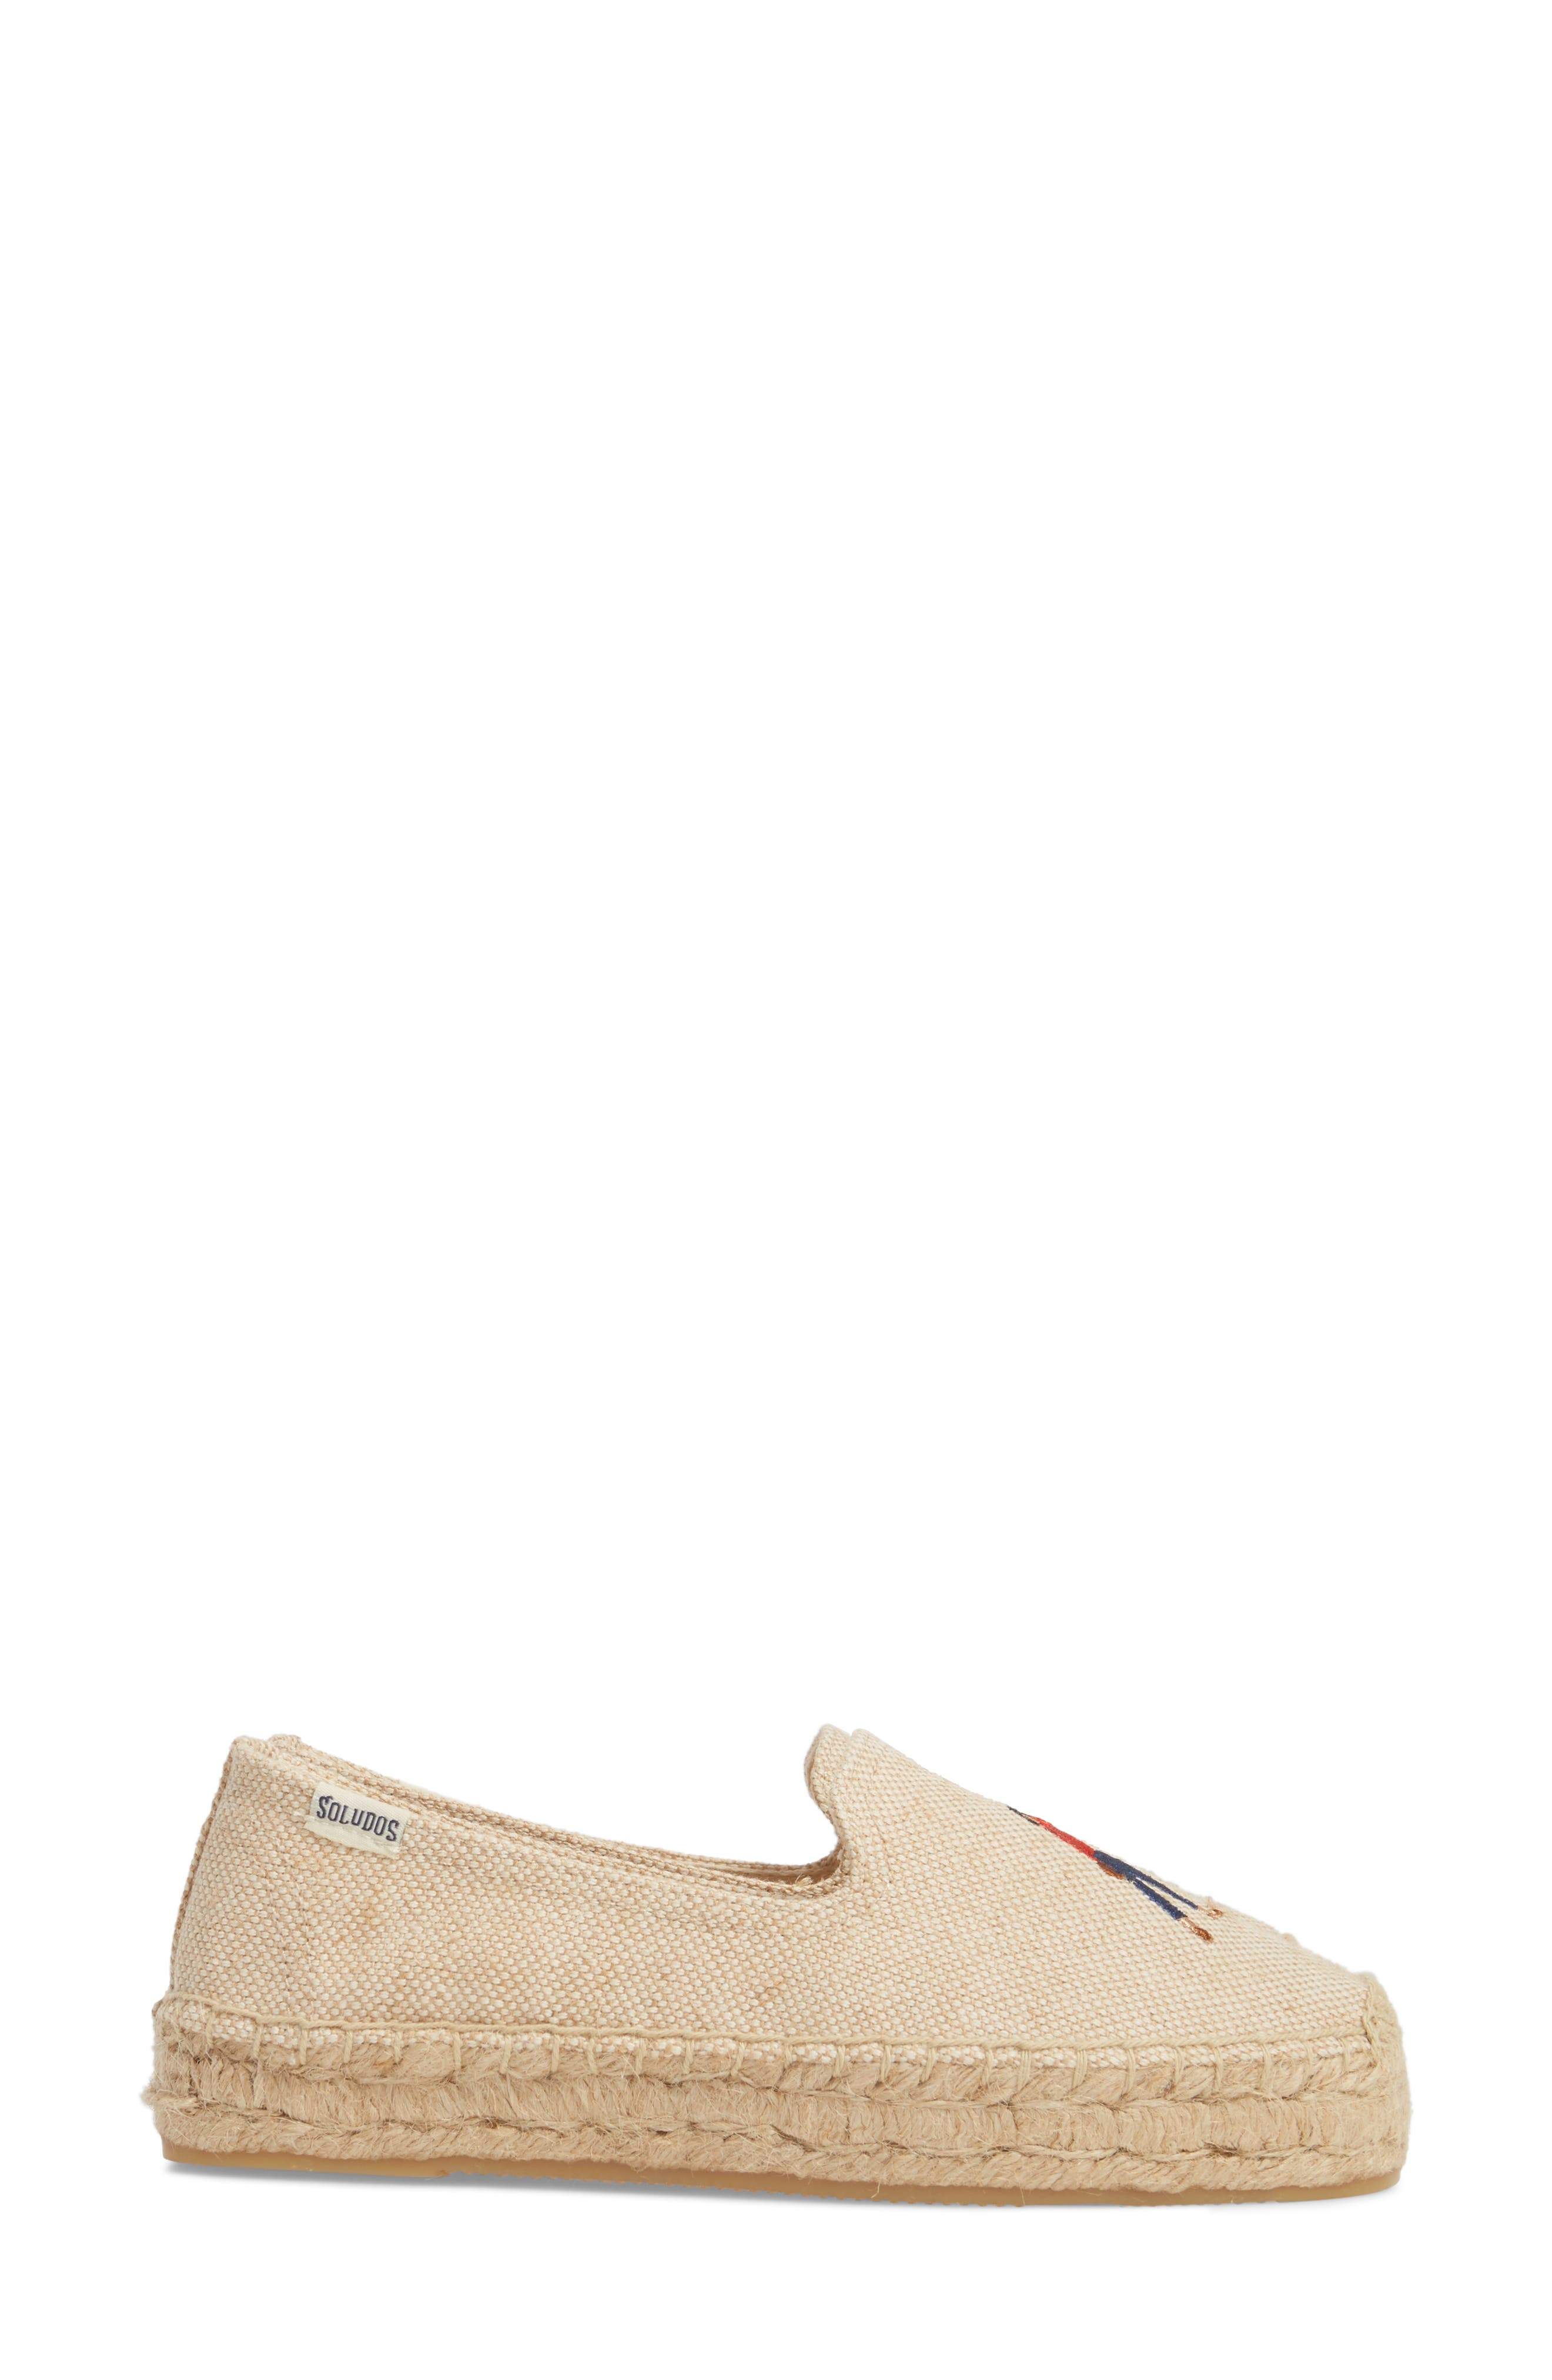 Taxi Embroidered Platform Espadrille,                             Alternate thumbnail 4, color,                             Natural Canvas